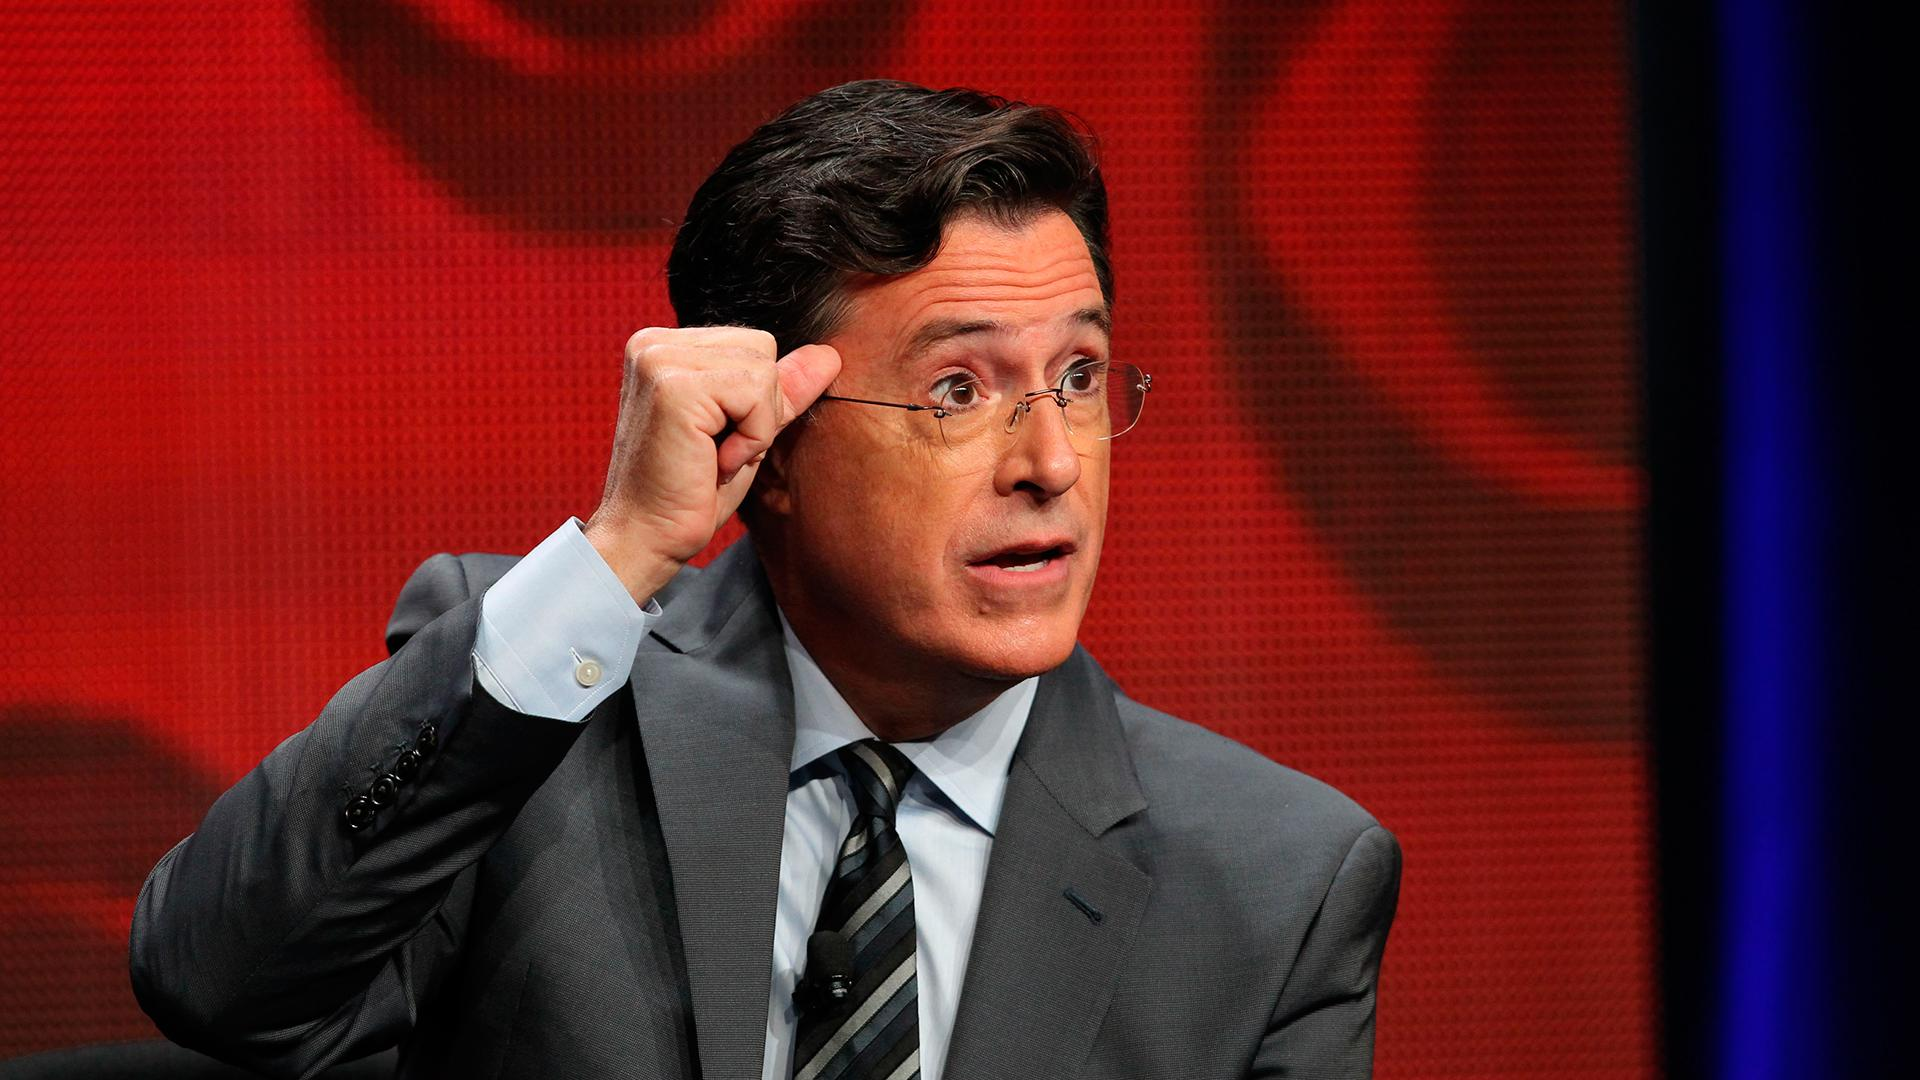 Stephen Colbert Promotes 'Late Show' on Snapchat